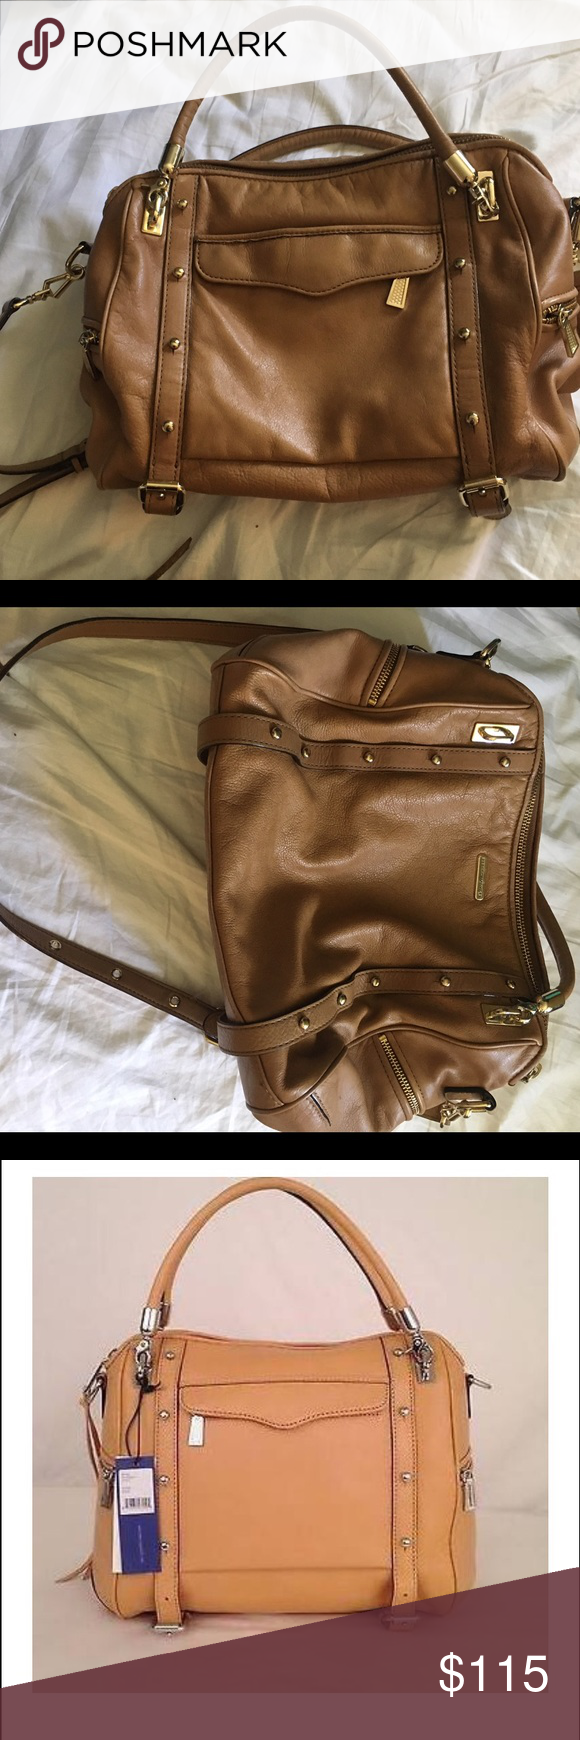 Rebecca Minkoff Cupid satchel Used Rebecca Minkoff satchel, great bag just don't use anymore. Make an offer. Third photo is stock to show it looks stuffed Rebecca Minkoff Bags Satchels